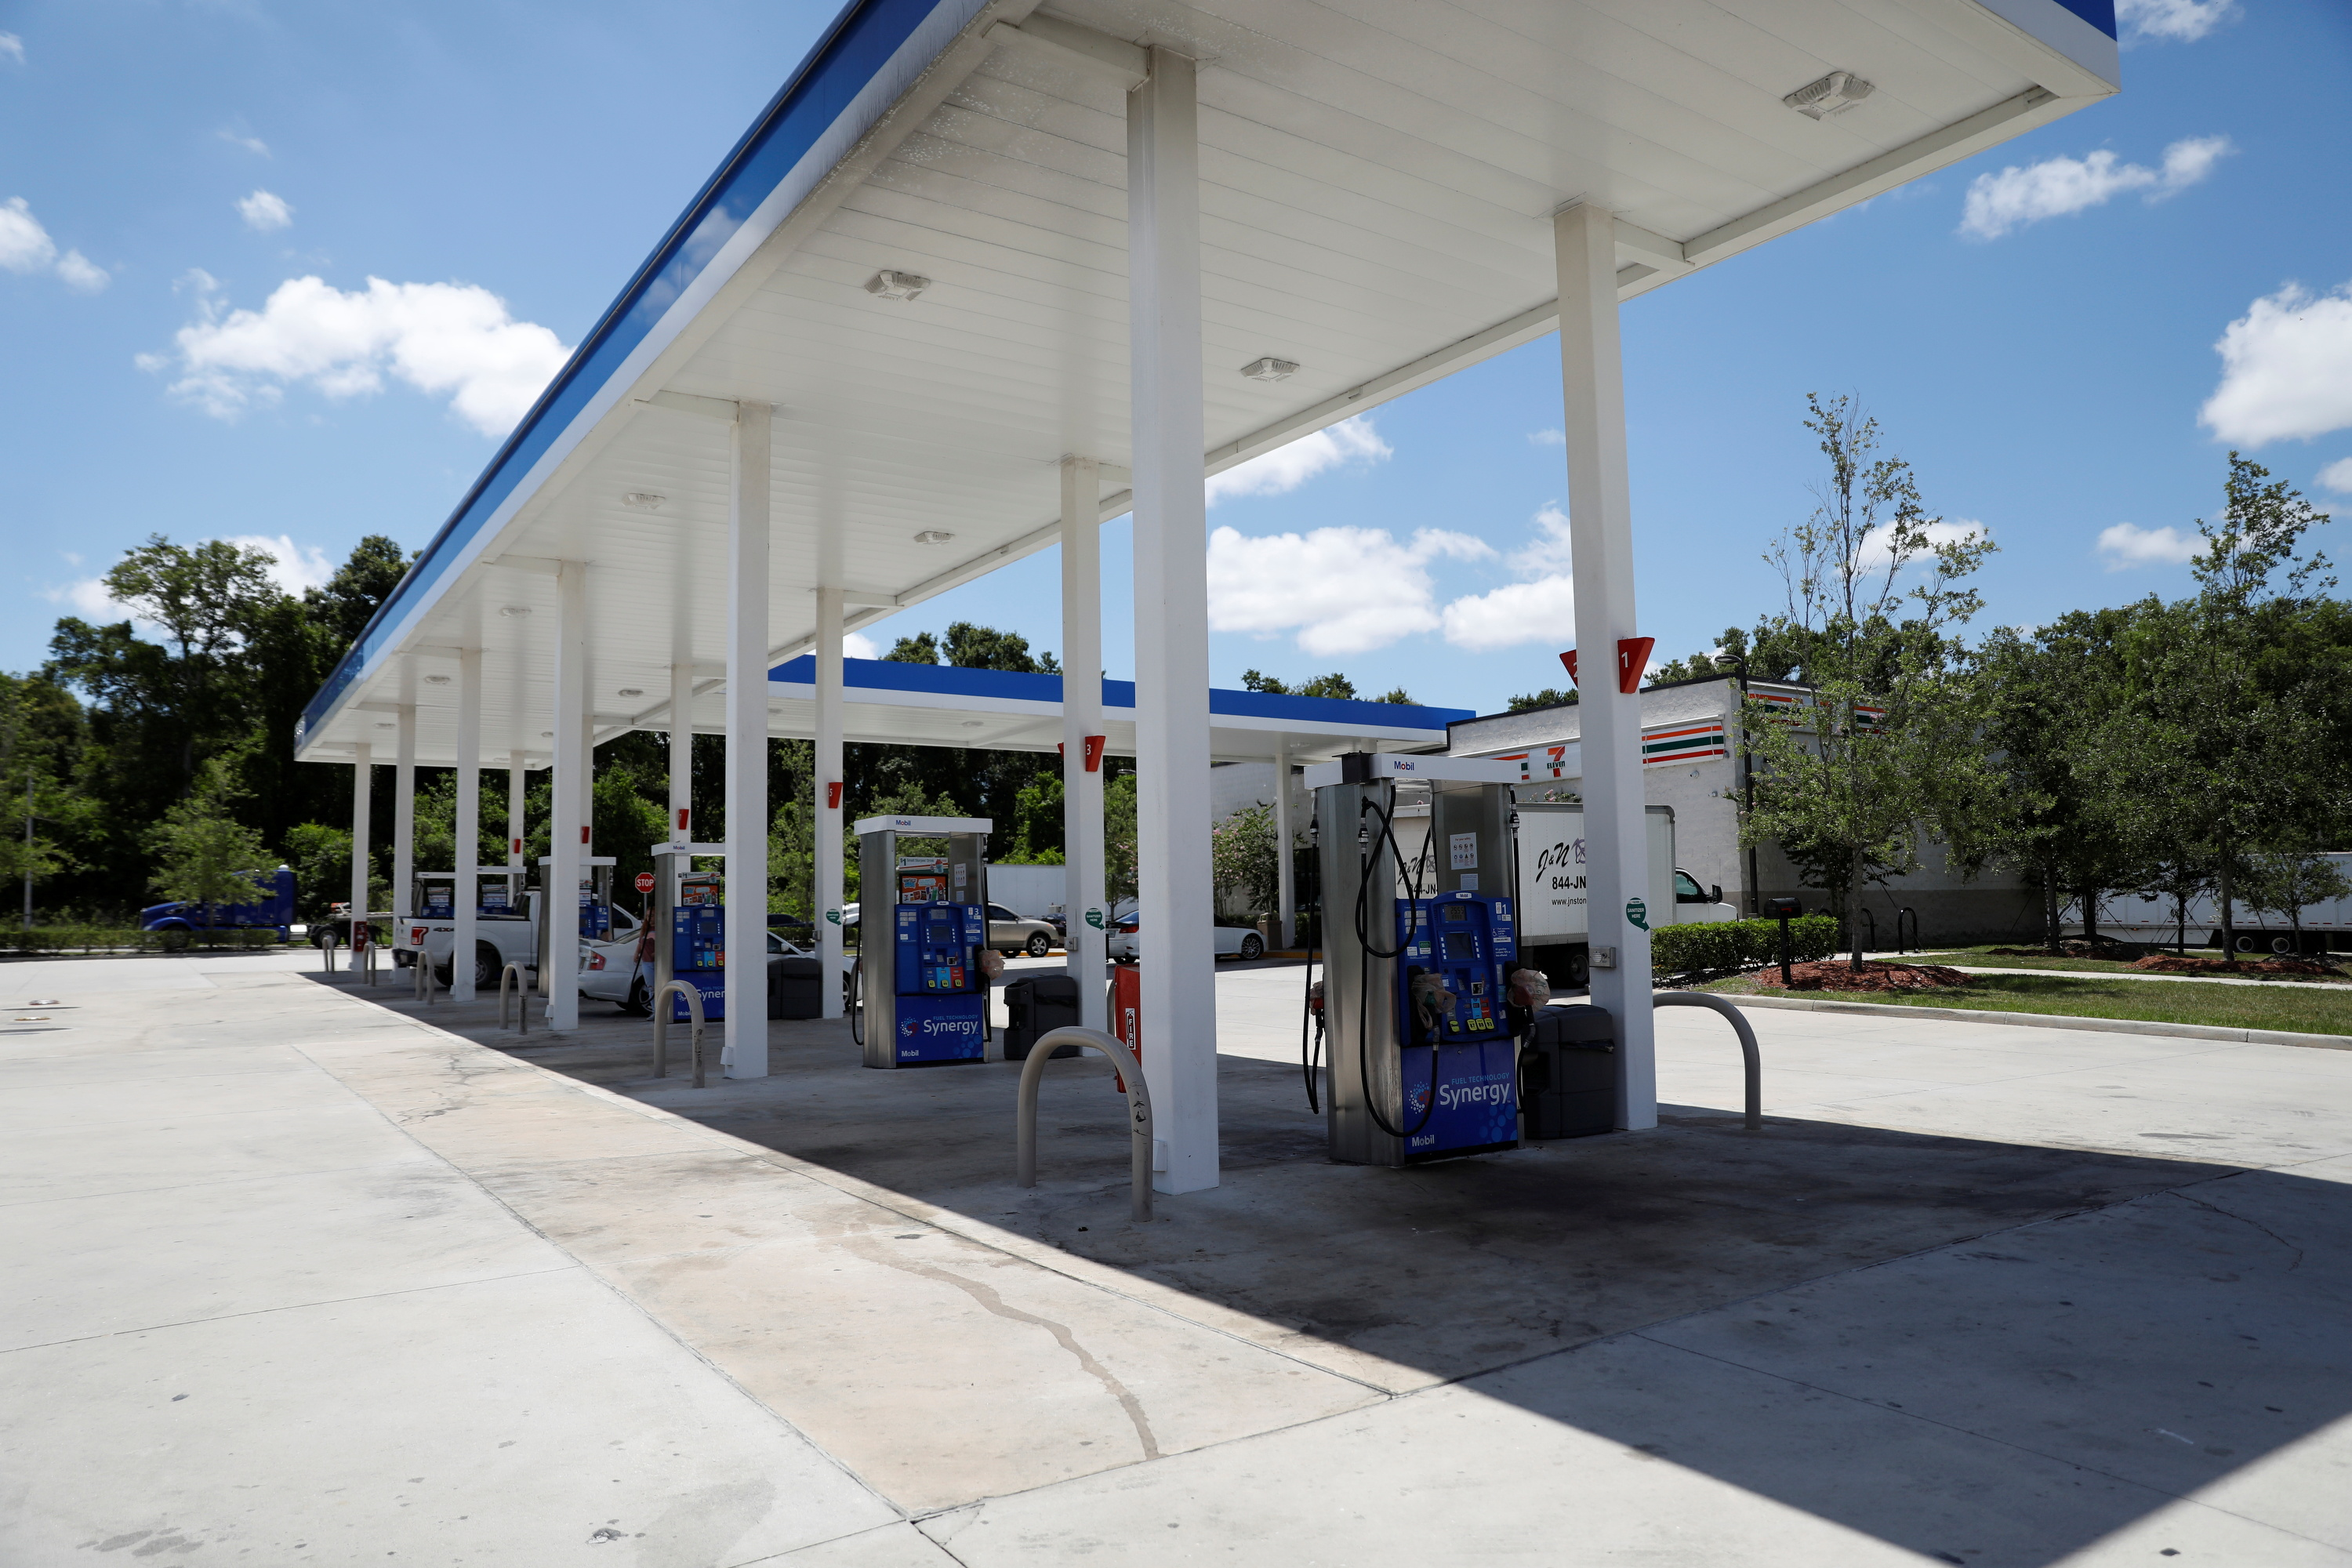 Plastic bags covering fuel pumps to signal no gas is available is seen at a 7-Eleven gas station after a cyberattack crippled the biggest fuel pipeline in the country, run by Colonial Pipeline, in Lakeland, Florida, U.S. May 14, 2021.  REUTERS/Octavio Jones